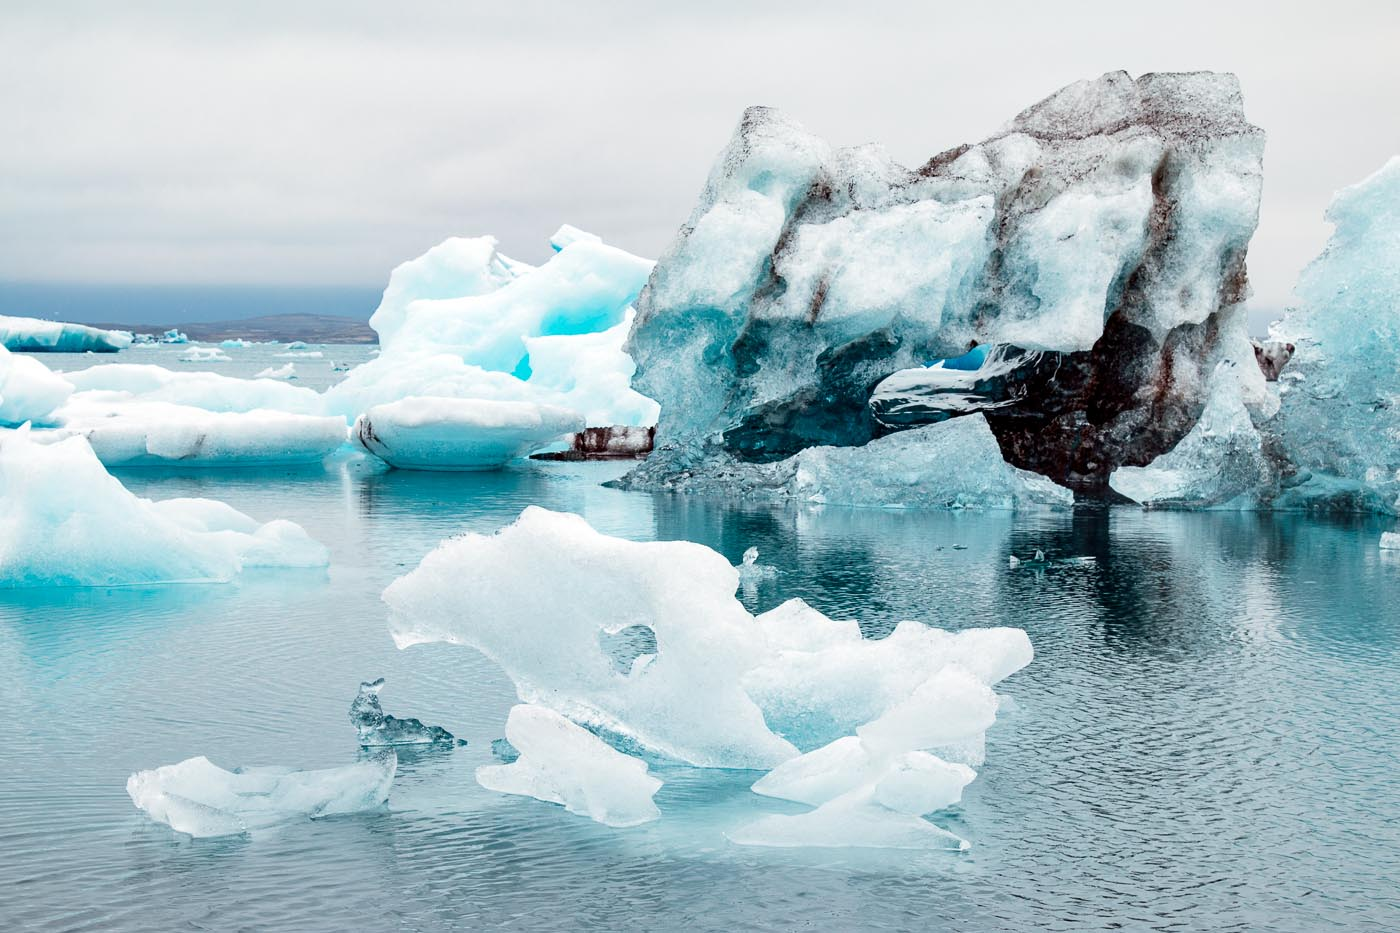 Blue icebergs floating in the Jökulsárlón iceberg lagoon